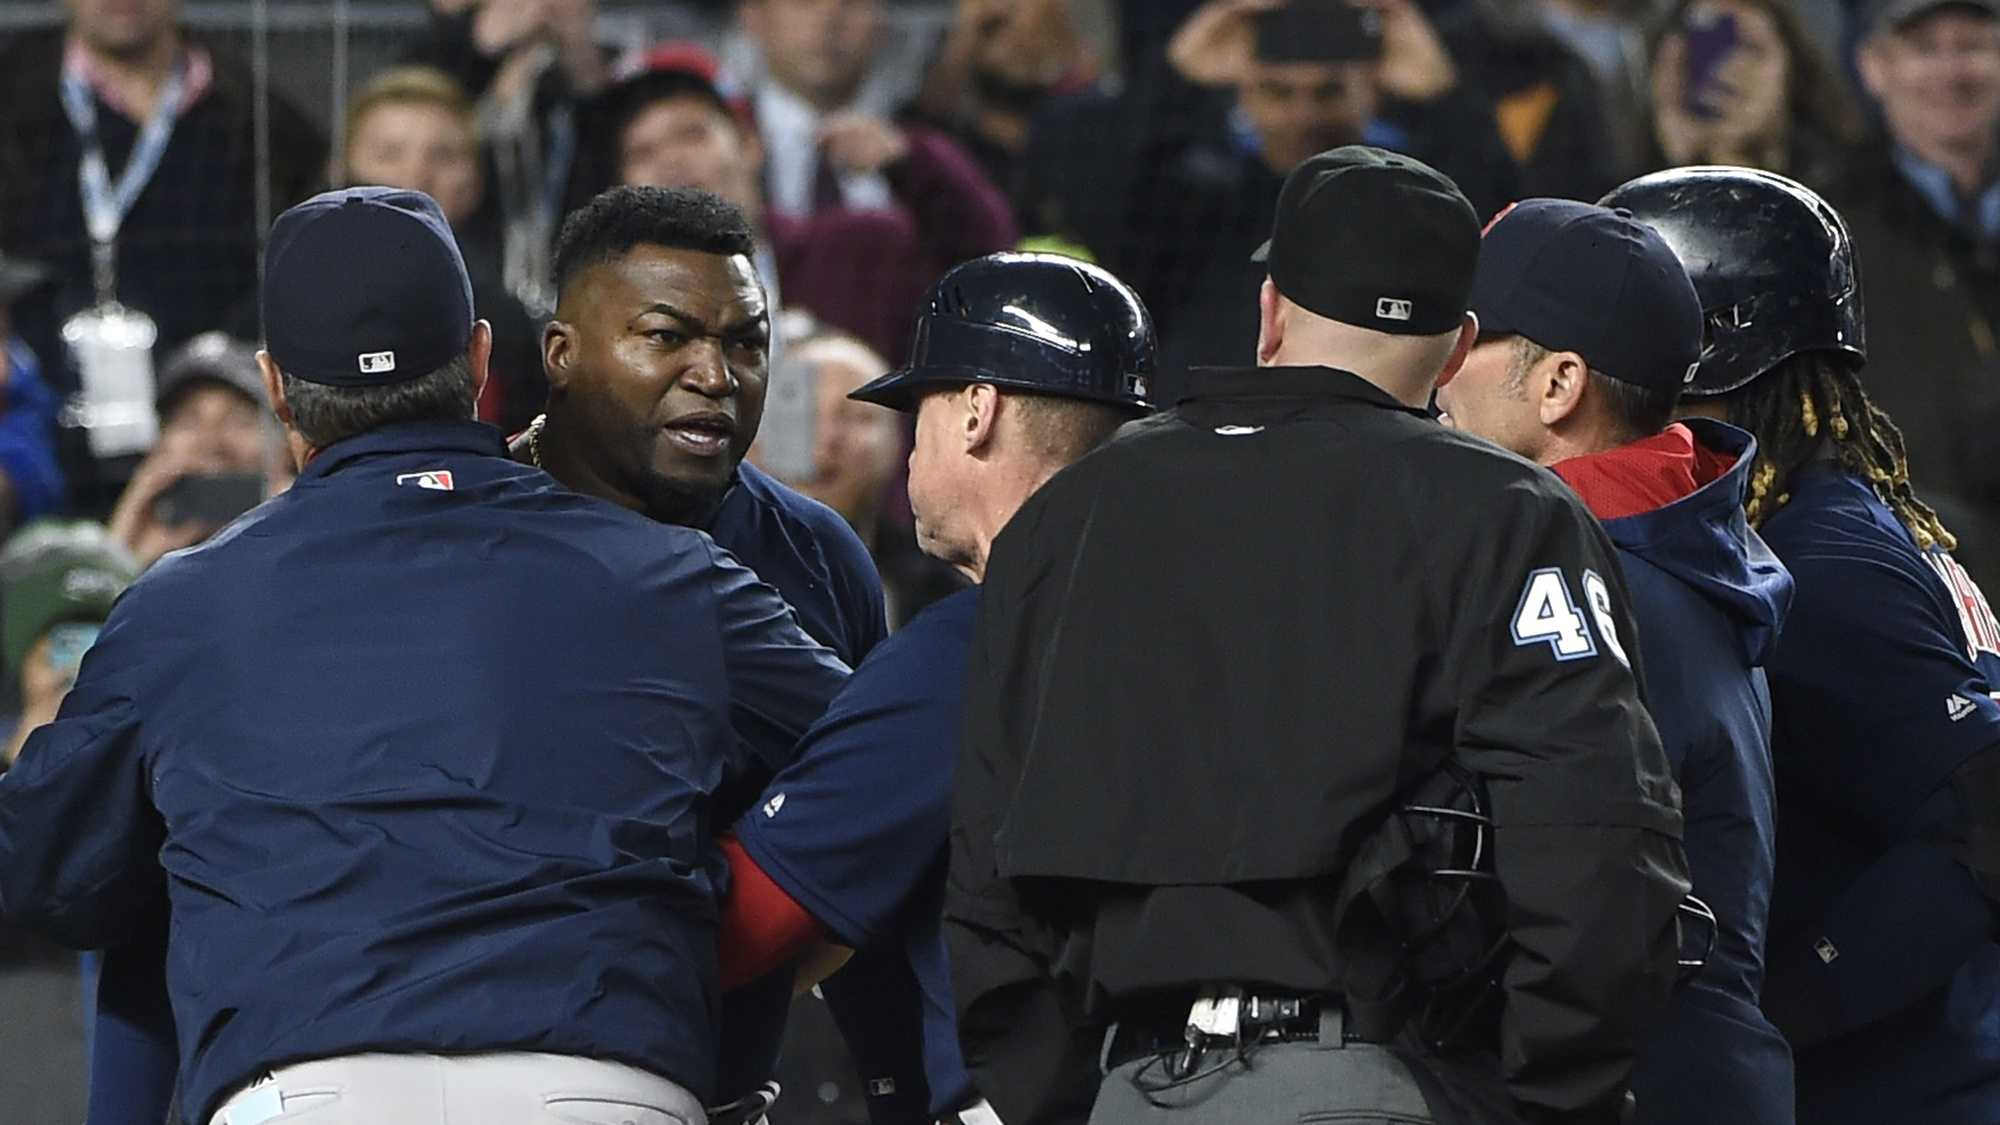 Boston Red Sox manager John Farrell, left, and teammates push designated hitter David Ortiz, second from left, away from umpire Ron Kulpa (46) as Ortiz reacts to a called second strike off of New York Yankees relief pitcher Andrew Miller n the ninth inning of a baseball game, Friday, May 6, 2016, in New York. The Yankees won 3-2. Both Farrell and Ortiz were ejected from the game.